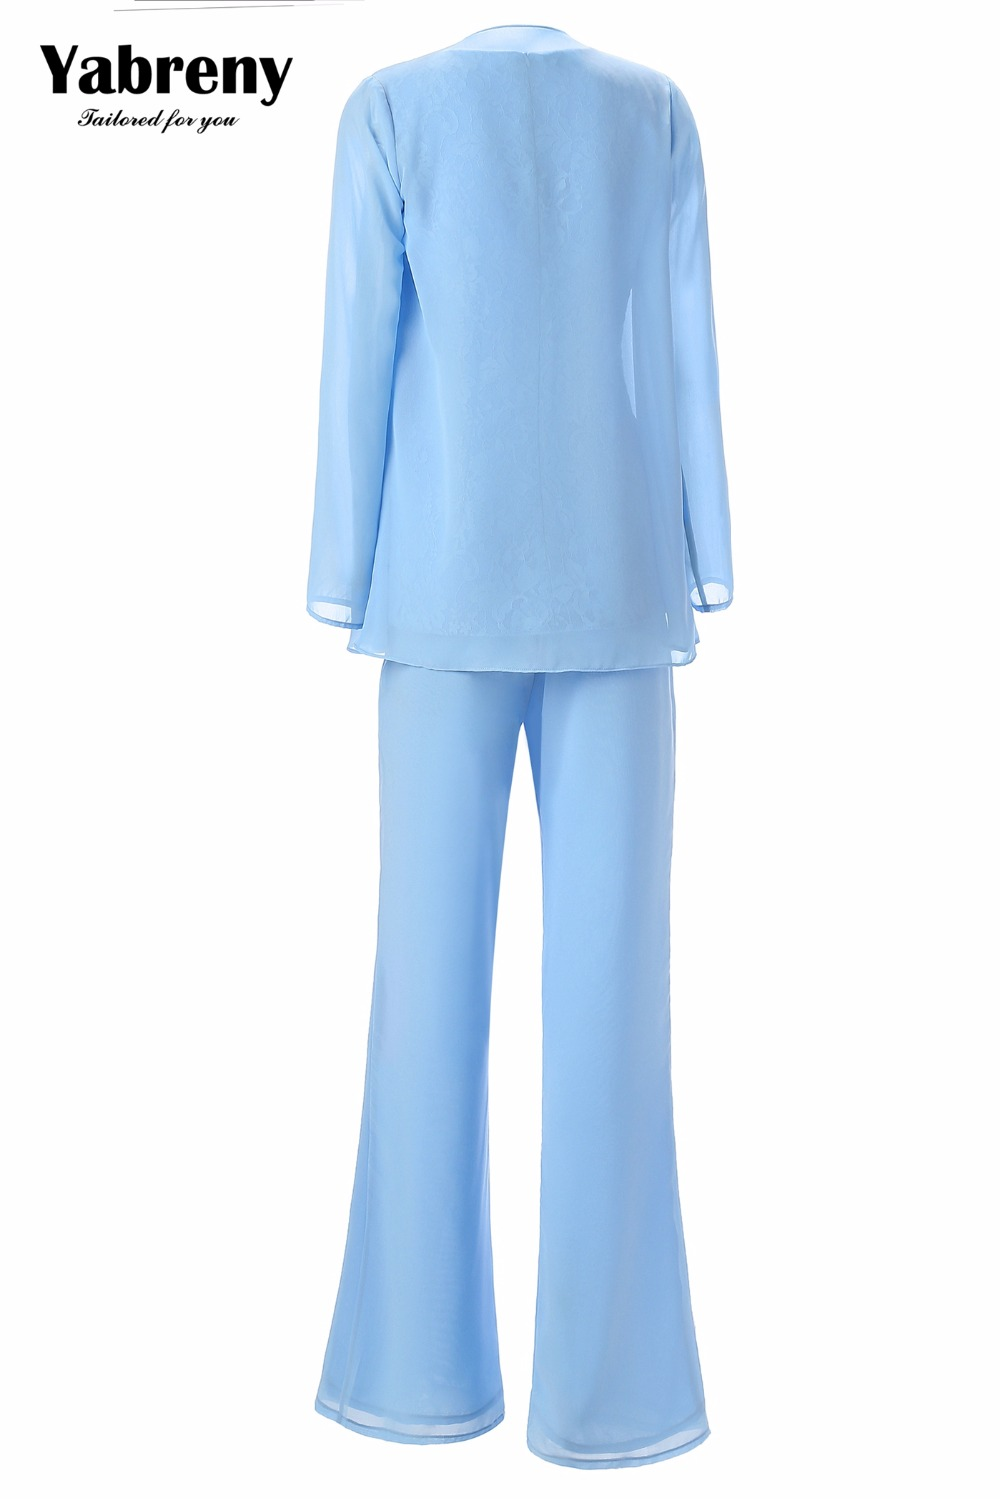 Image 4 - Yabreny Elegant Mother of the Bride Pants suit Lavender Chiffon Outfit for Special occasion MT001704 2-in Mother of the Bride Dresses from Weddings & Events